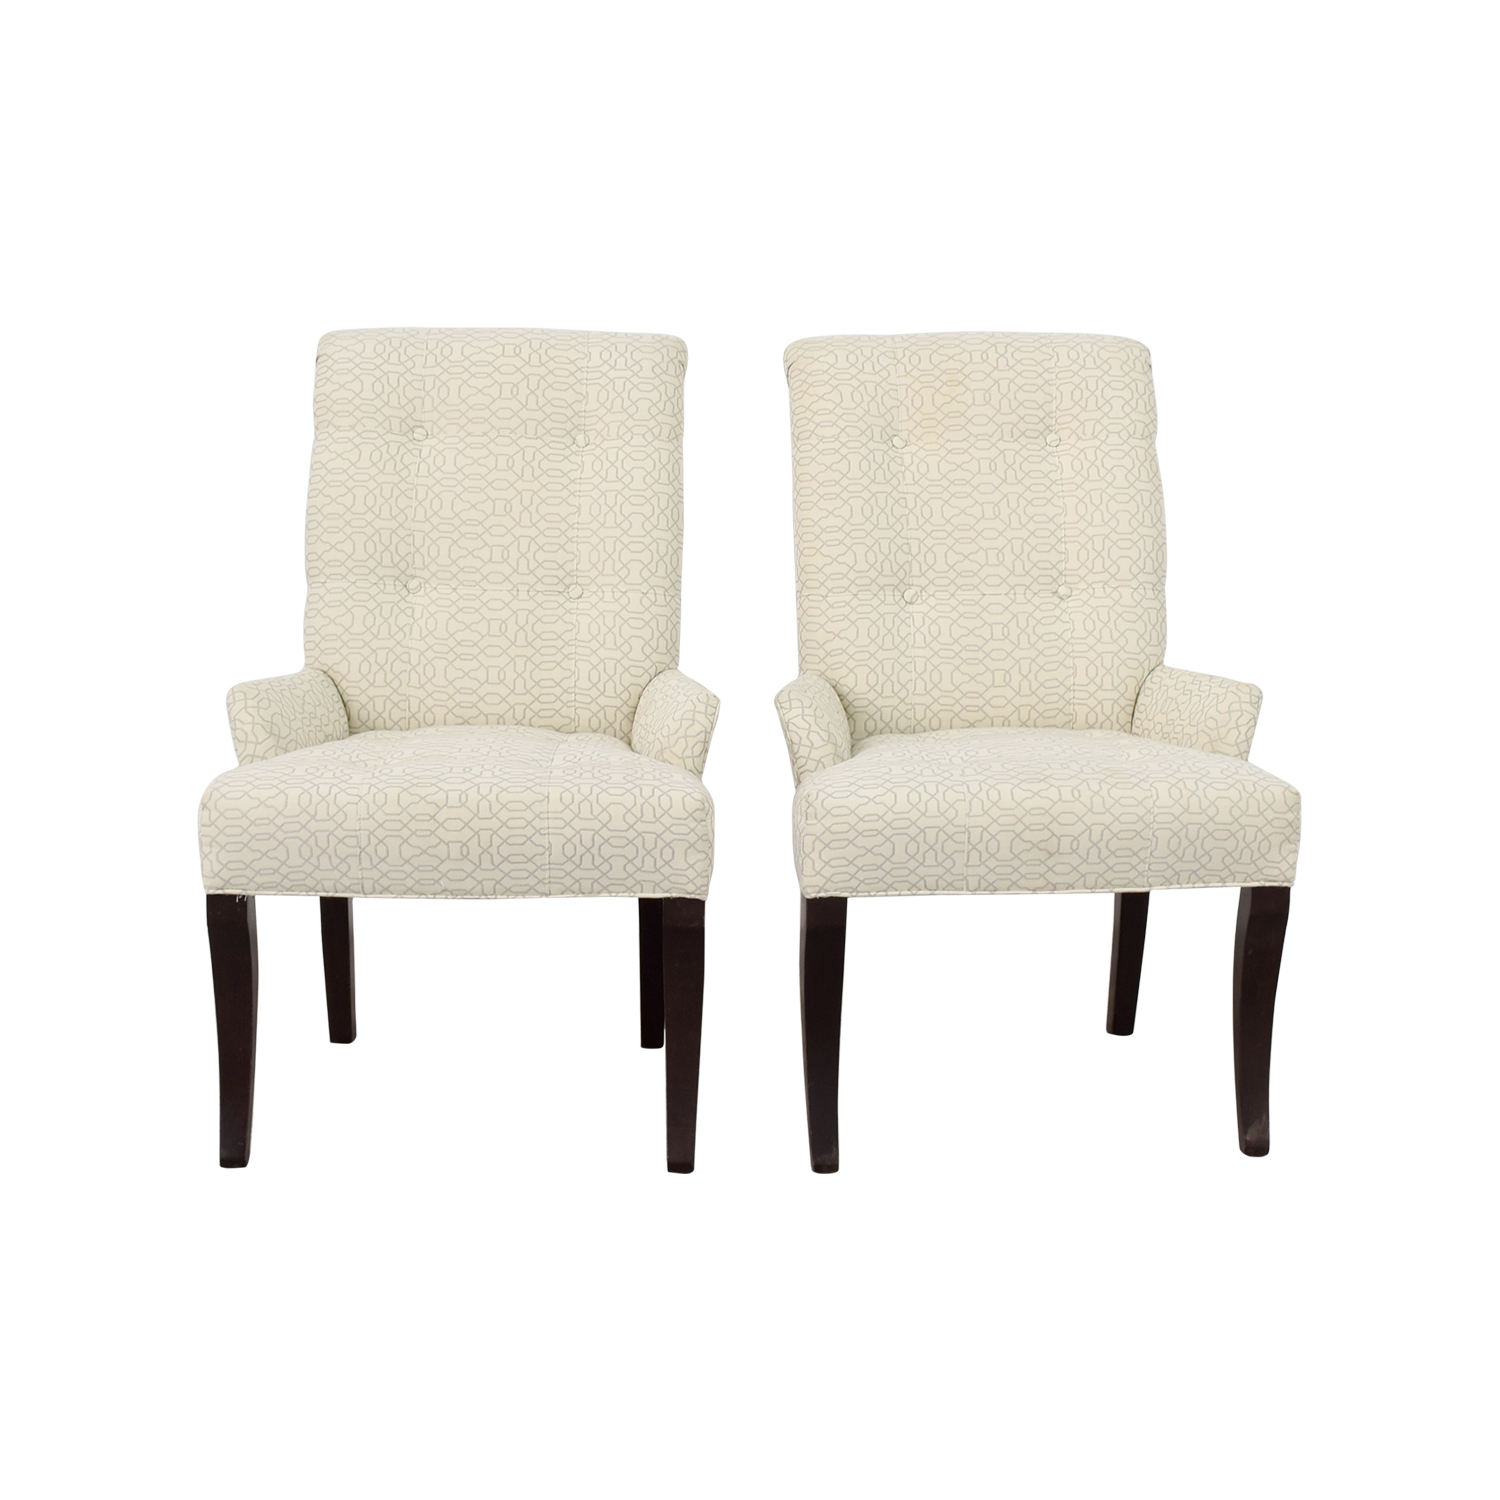 Simple White Accent Chair Minimalist